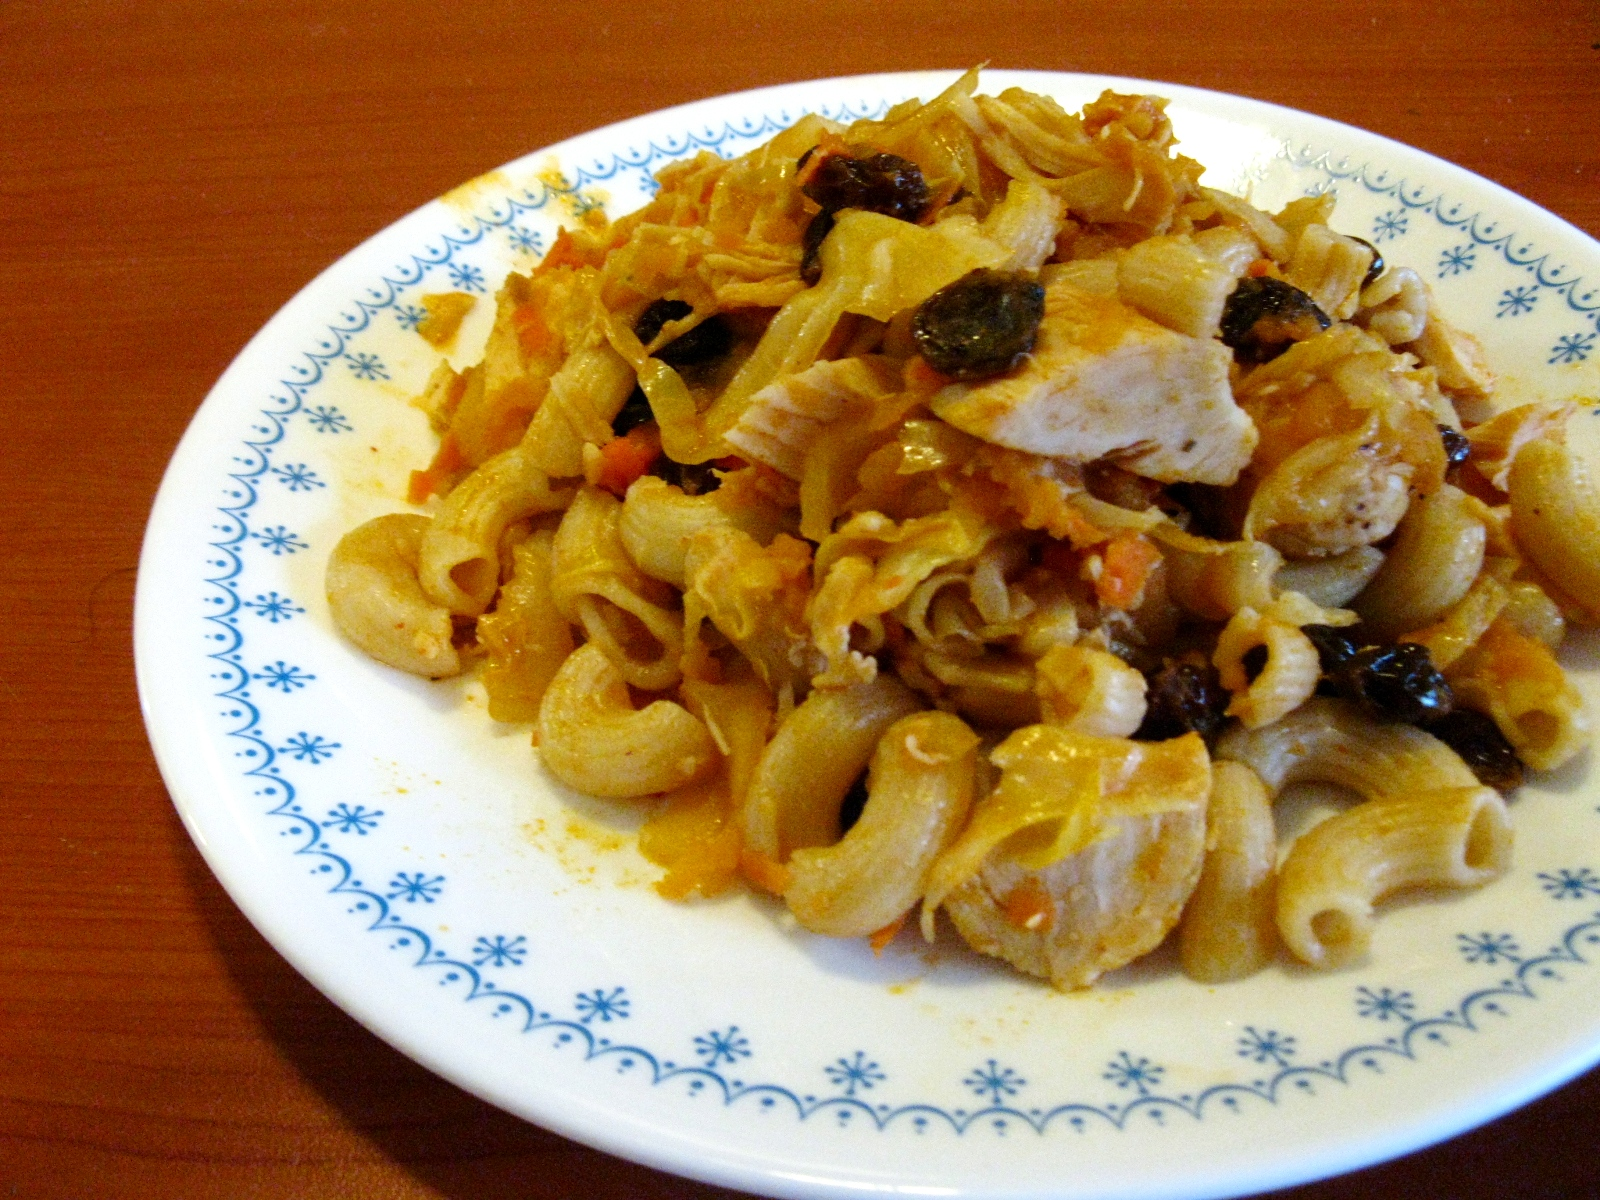 ... of Gluten-Free Goddess' Chicken Curry Apple Stir-Fry recipe